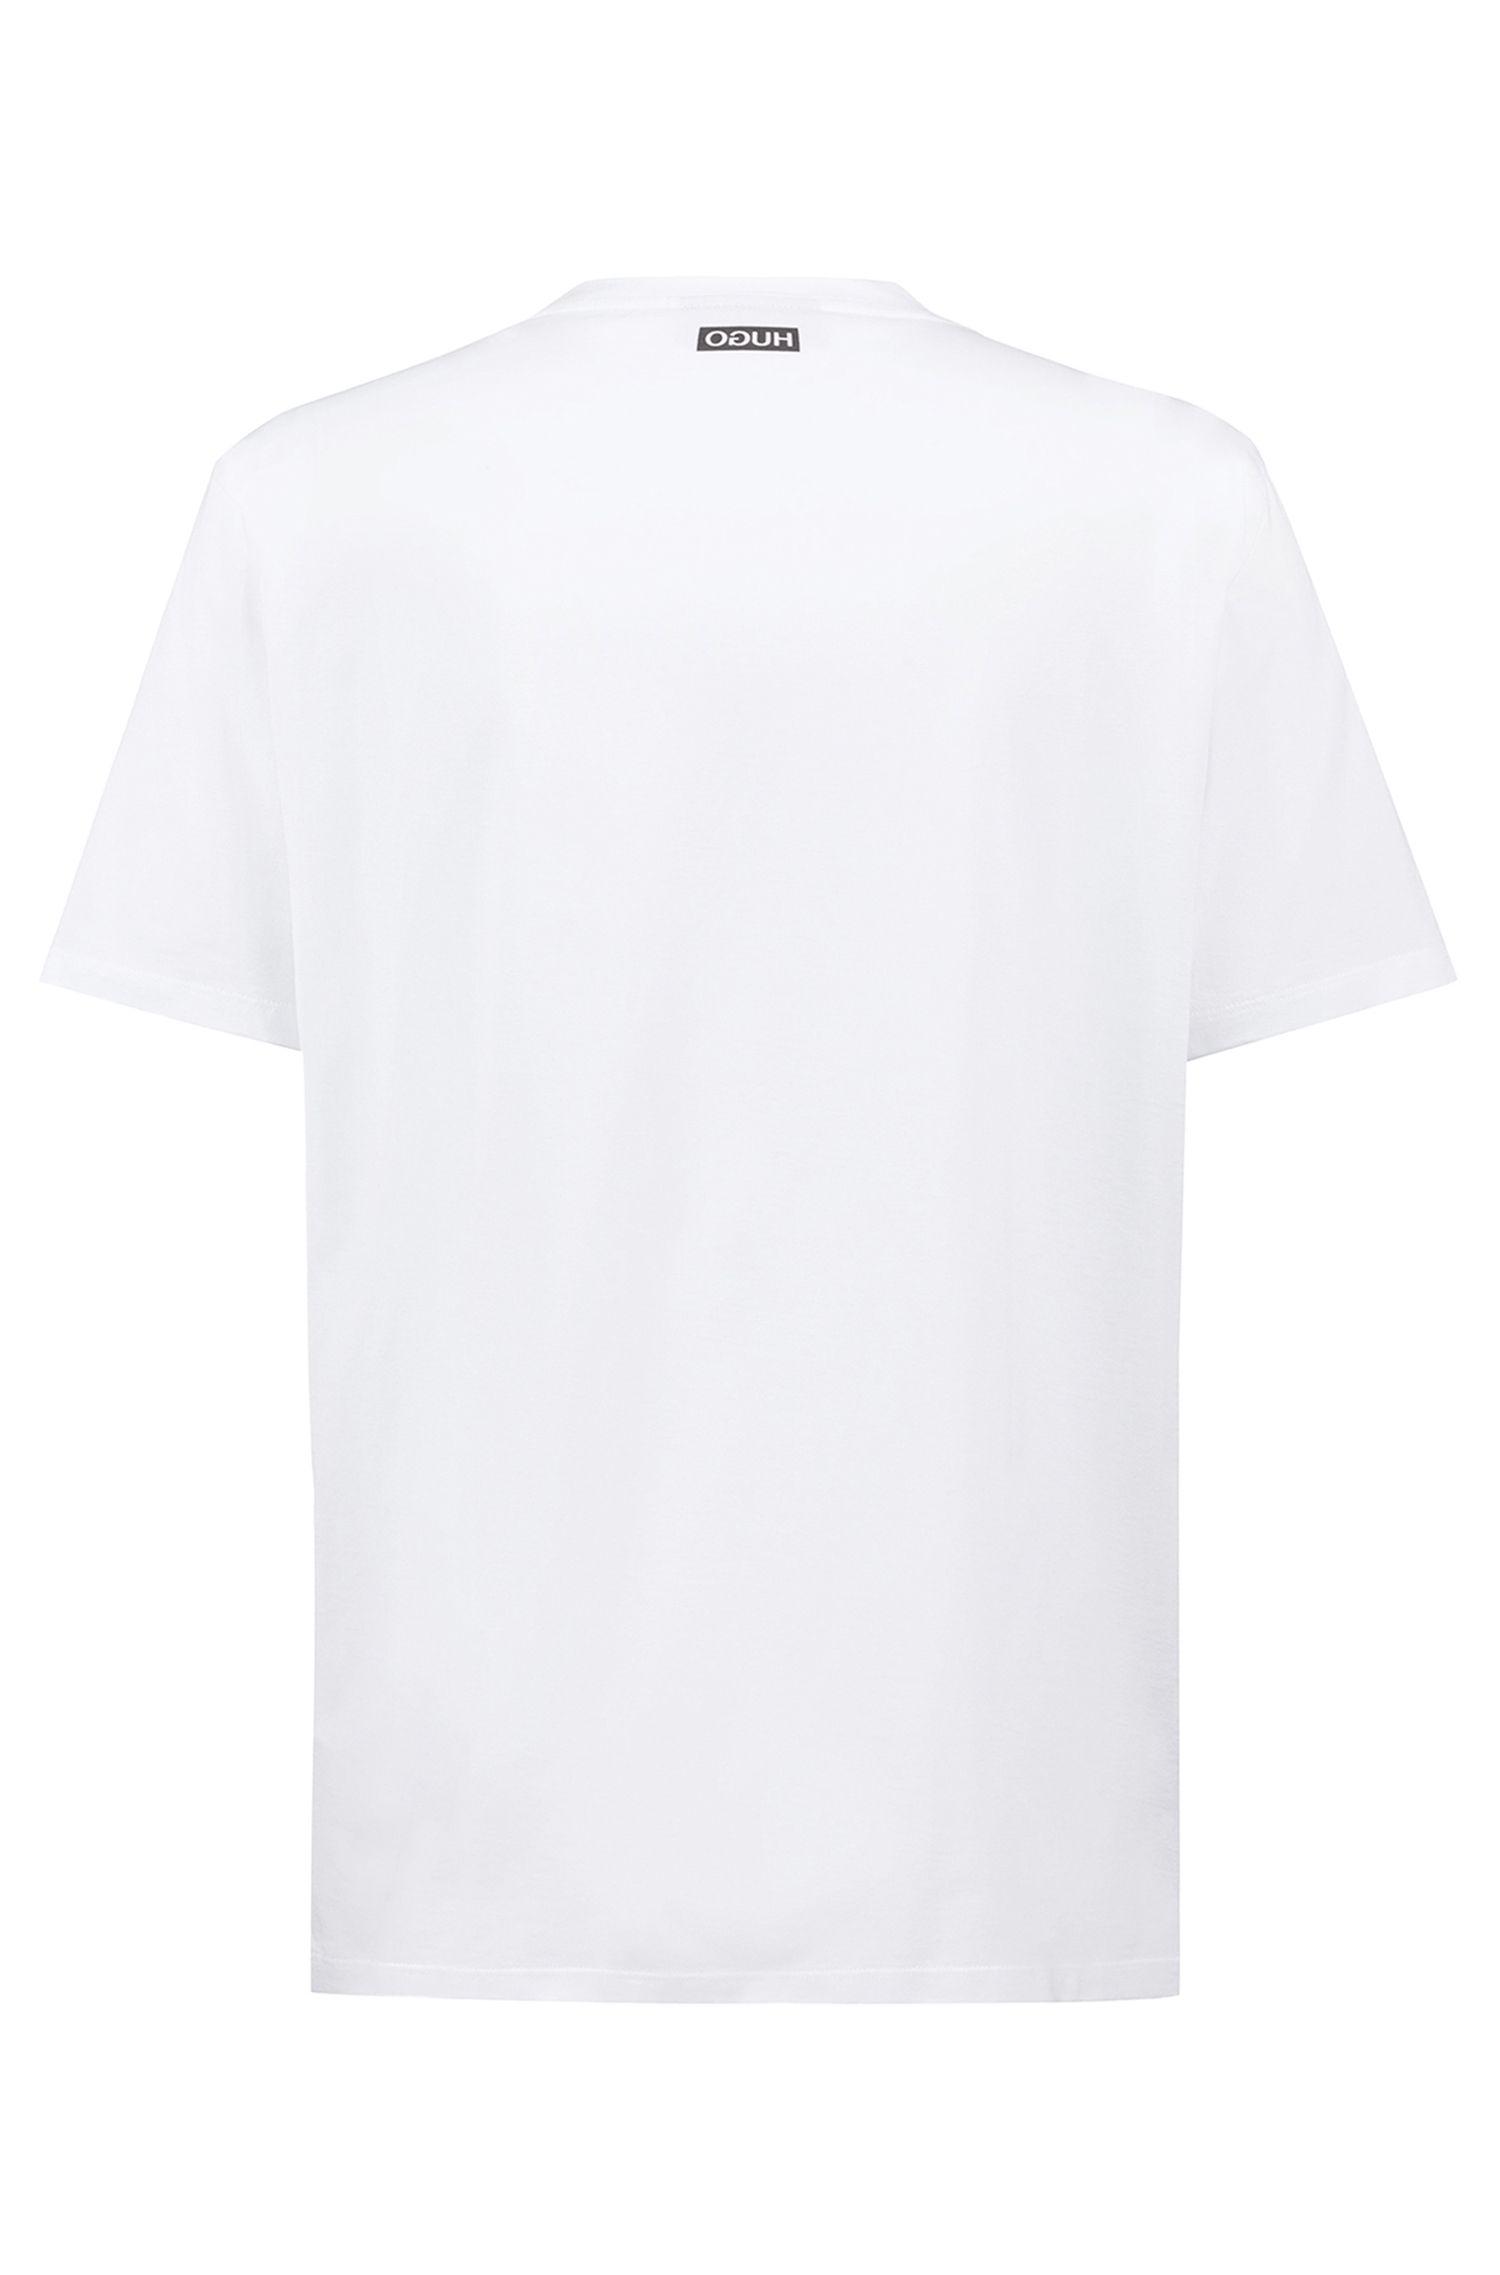 Unisex cotton T-shirt with reversed personalization, White